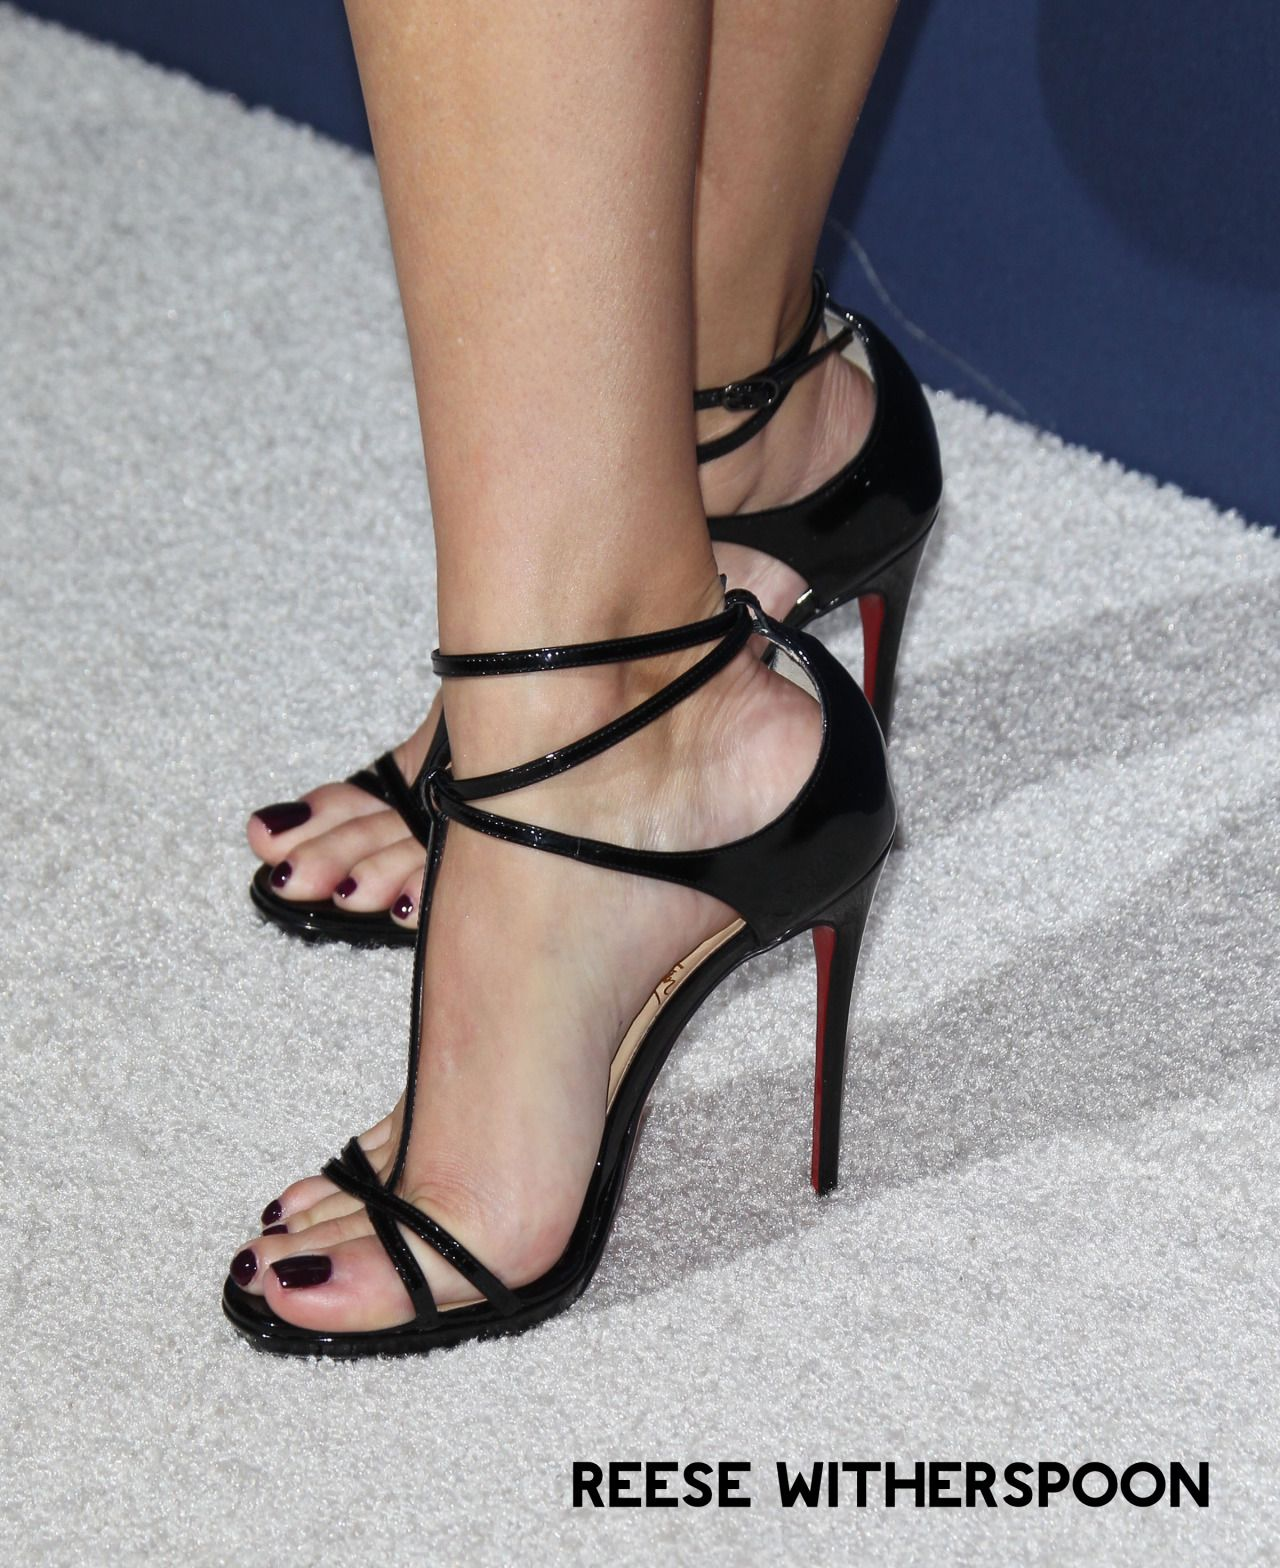 Reese Witherspoon Barfuß foto 29